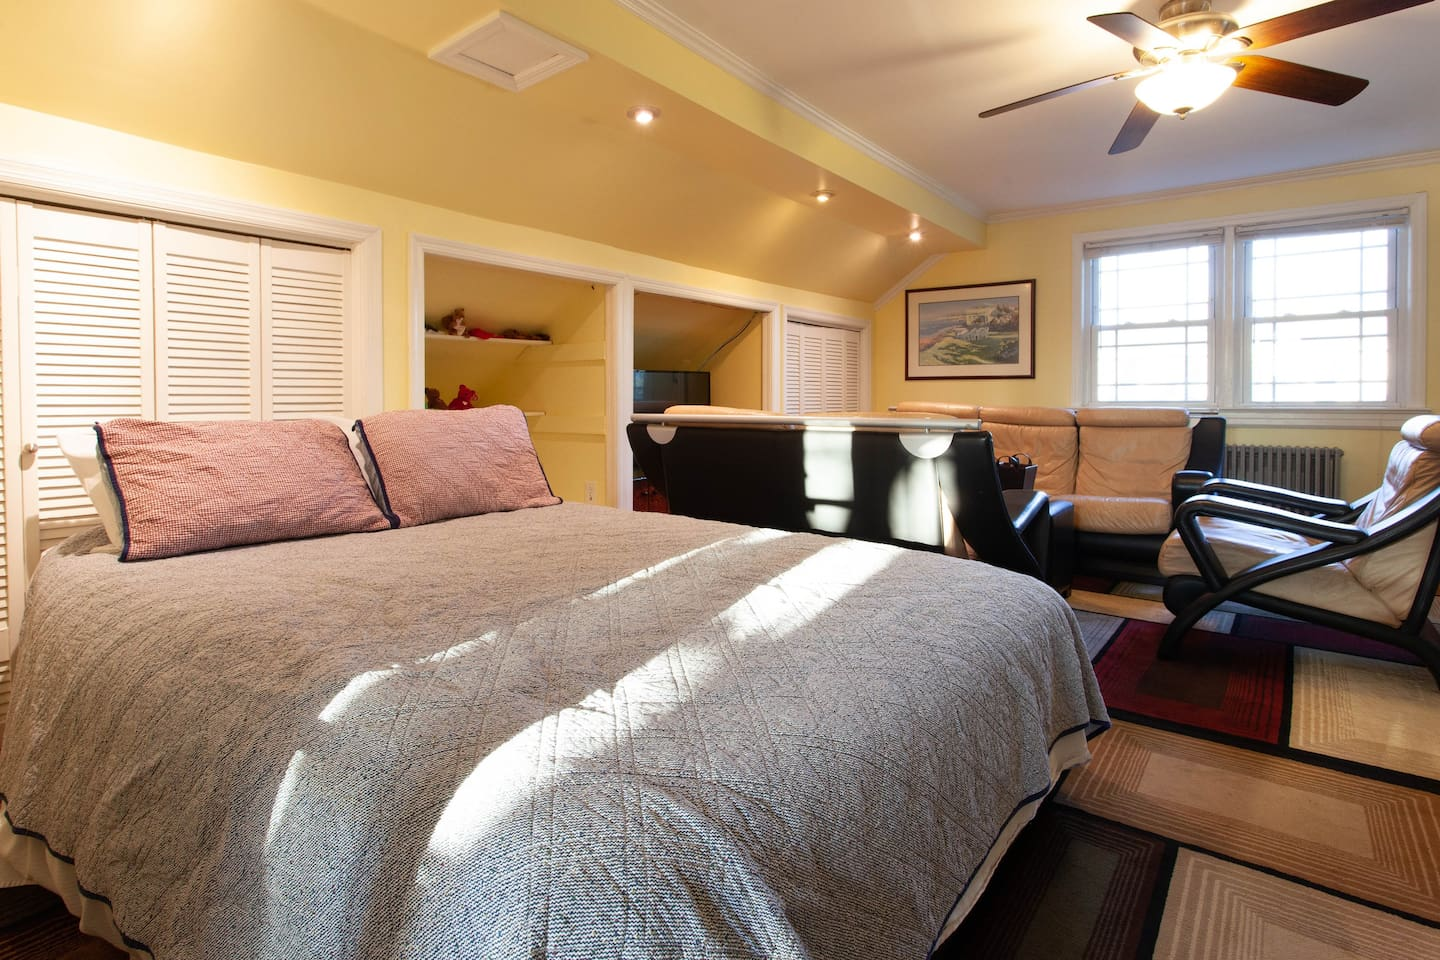 Main living/sleeping room. The bed shown here is an Aerobed which is readied when two guests request a second bed or there are 3-4 guests.  Note the main bed in the next picture for 1 or 2 guests.